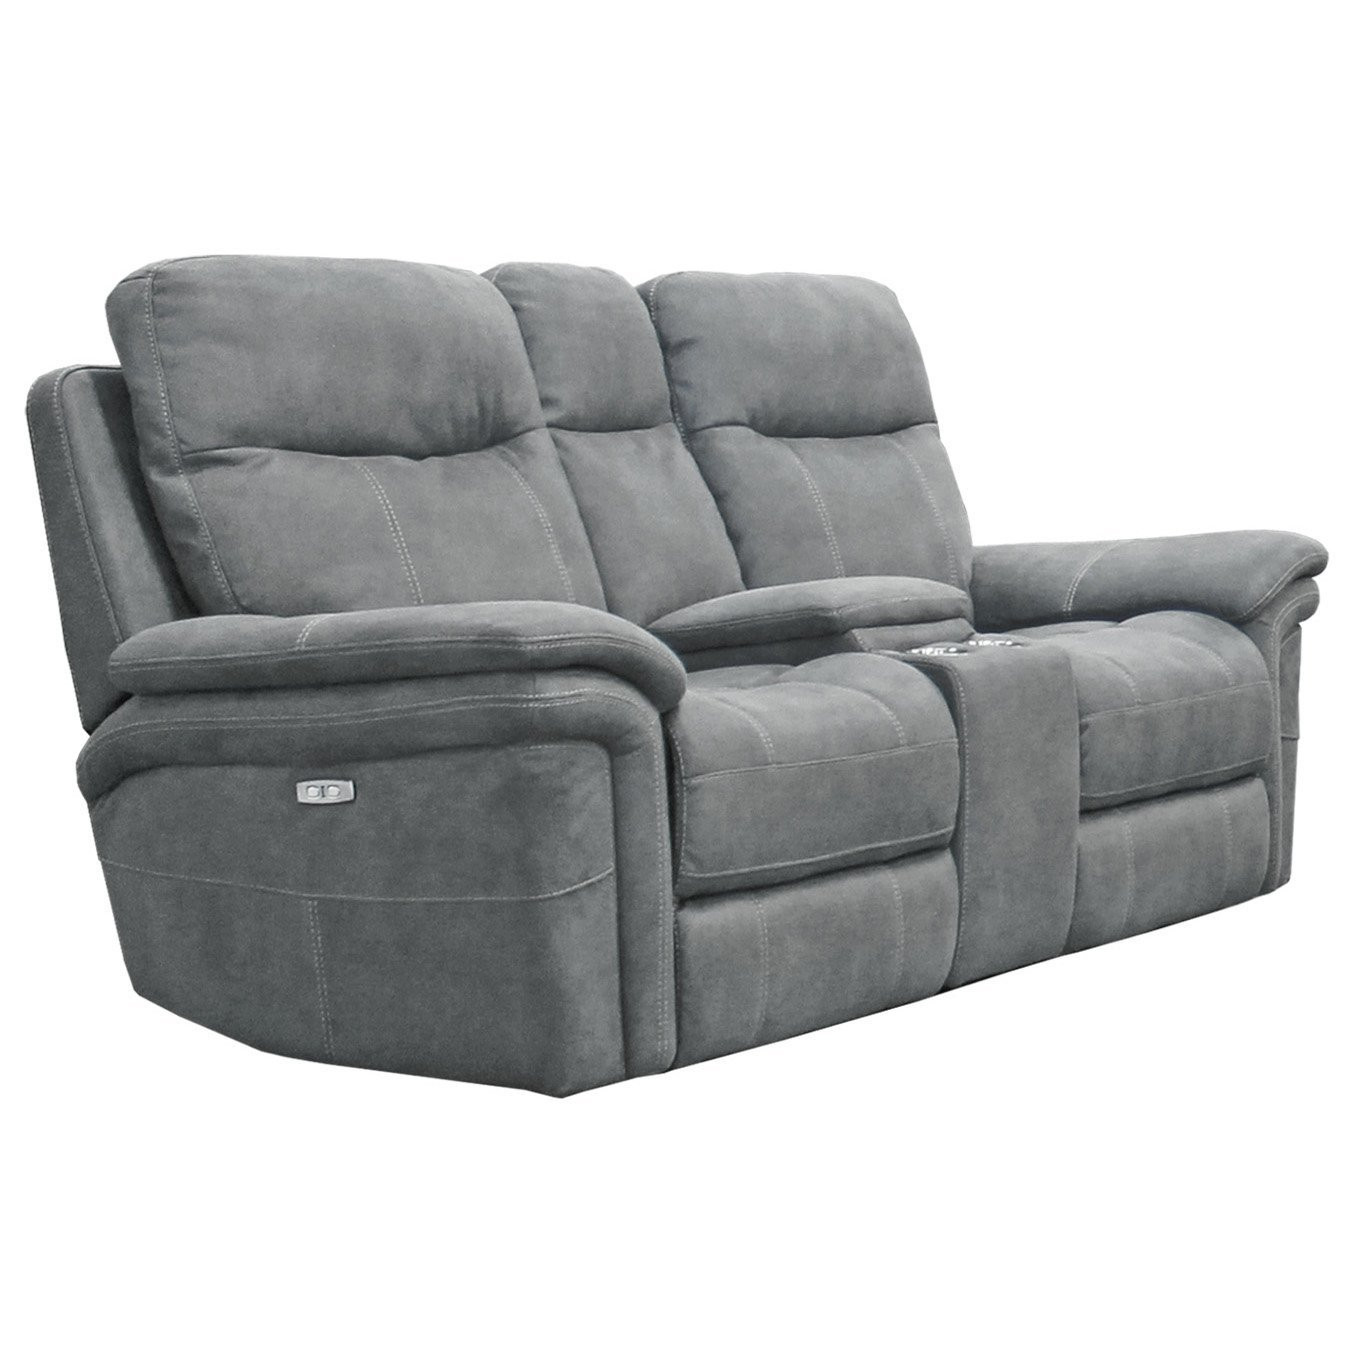 Swell Mason Carbon Power Headrest Reclining Sofa Sofas And Pabps2019 Chair Design Images Pabps2019Com